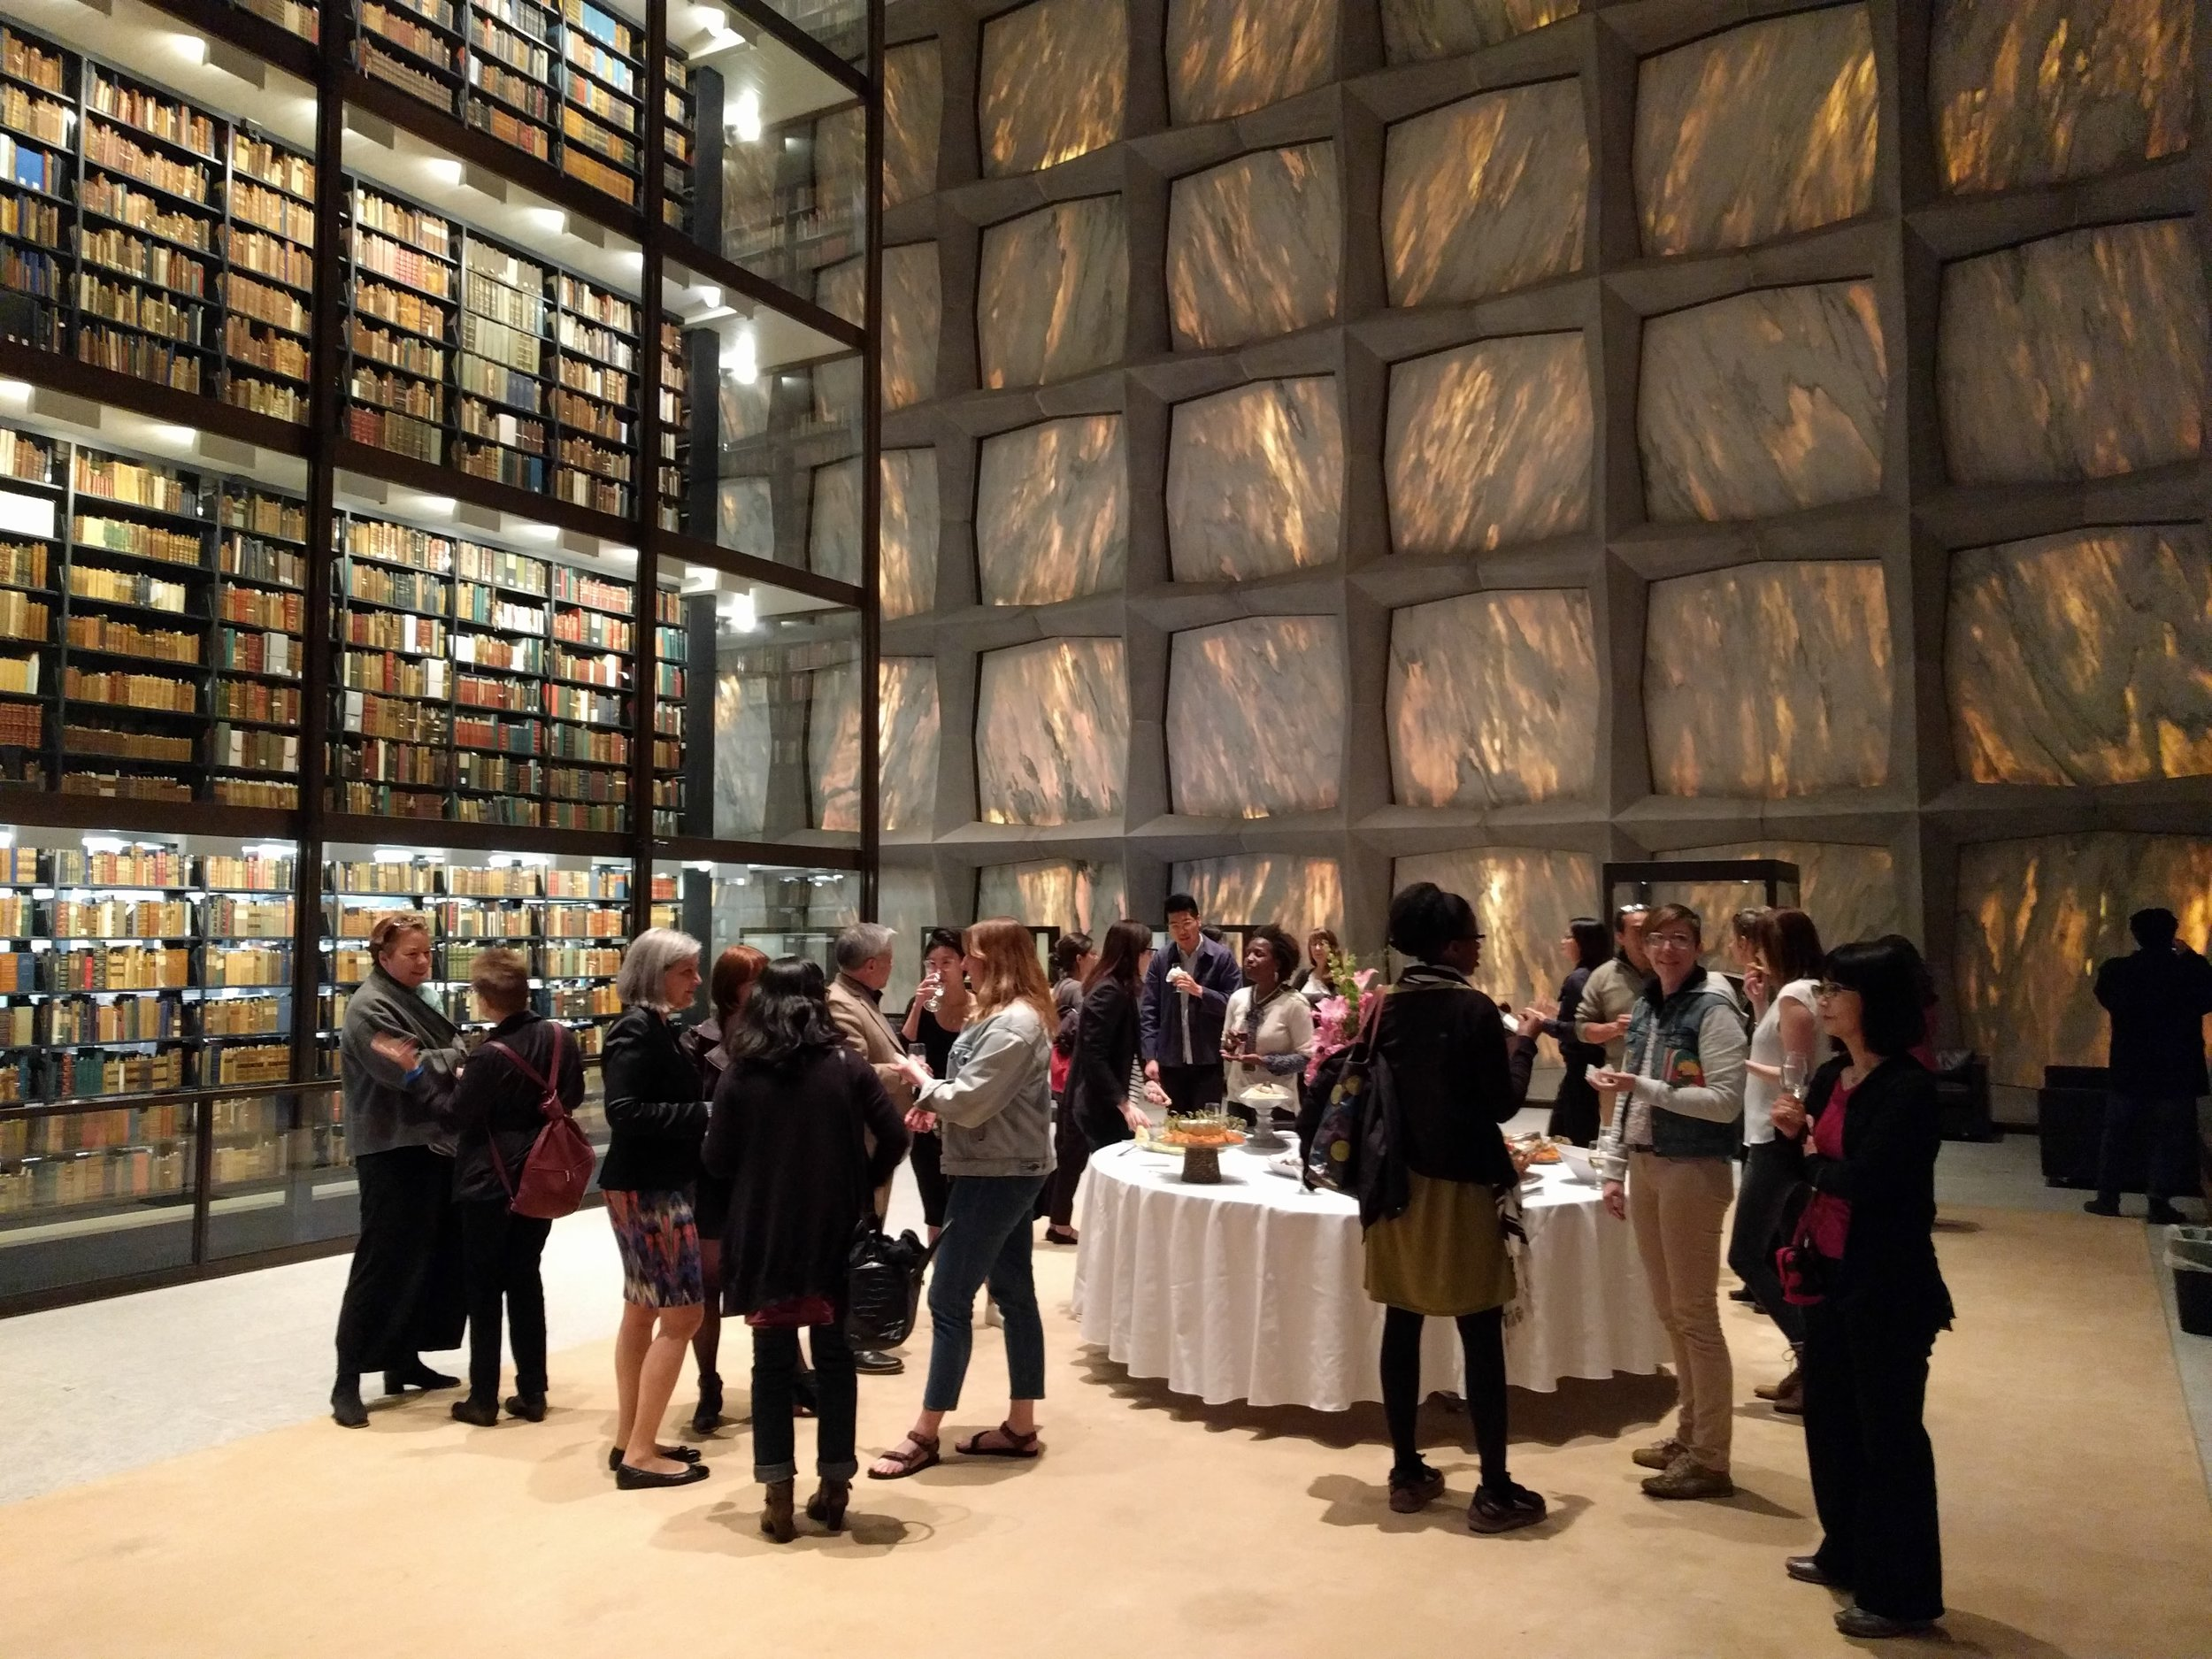 Reception at the Beinecke Rare Book & Manuscripts Library, Yale University (J. Orpana, 2017)